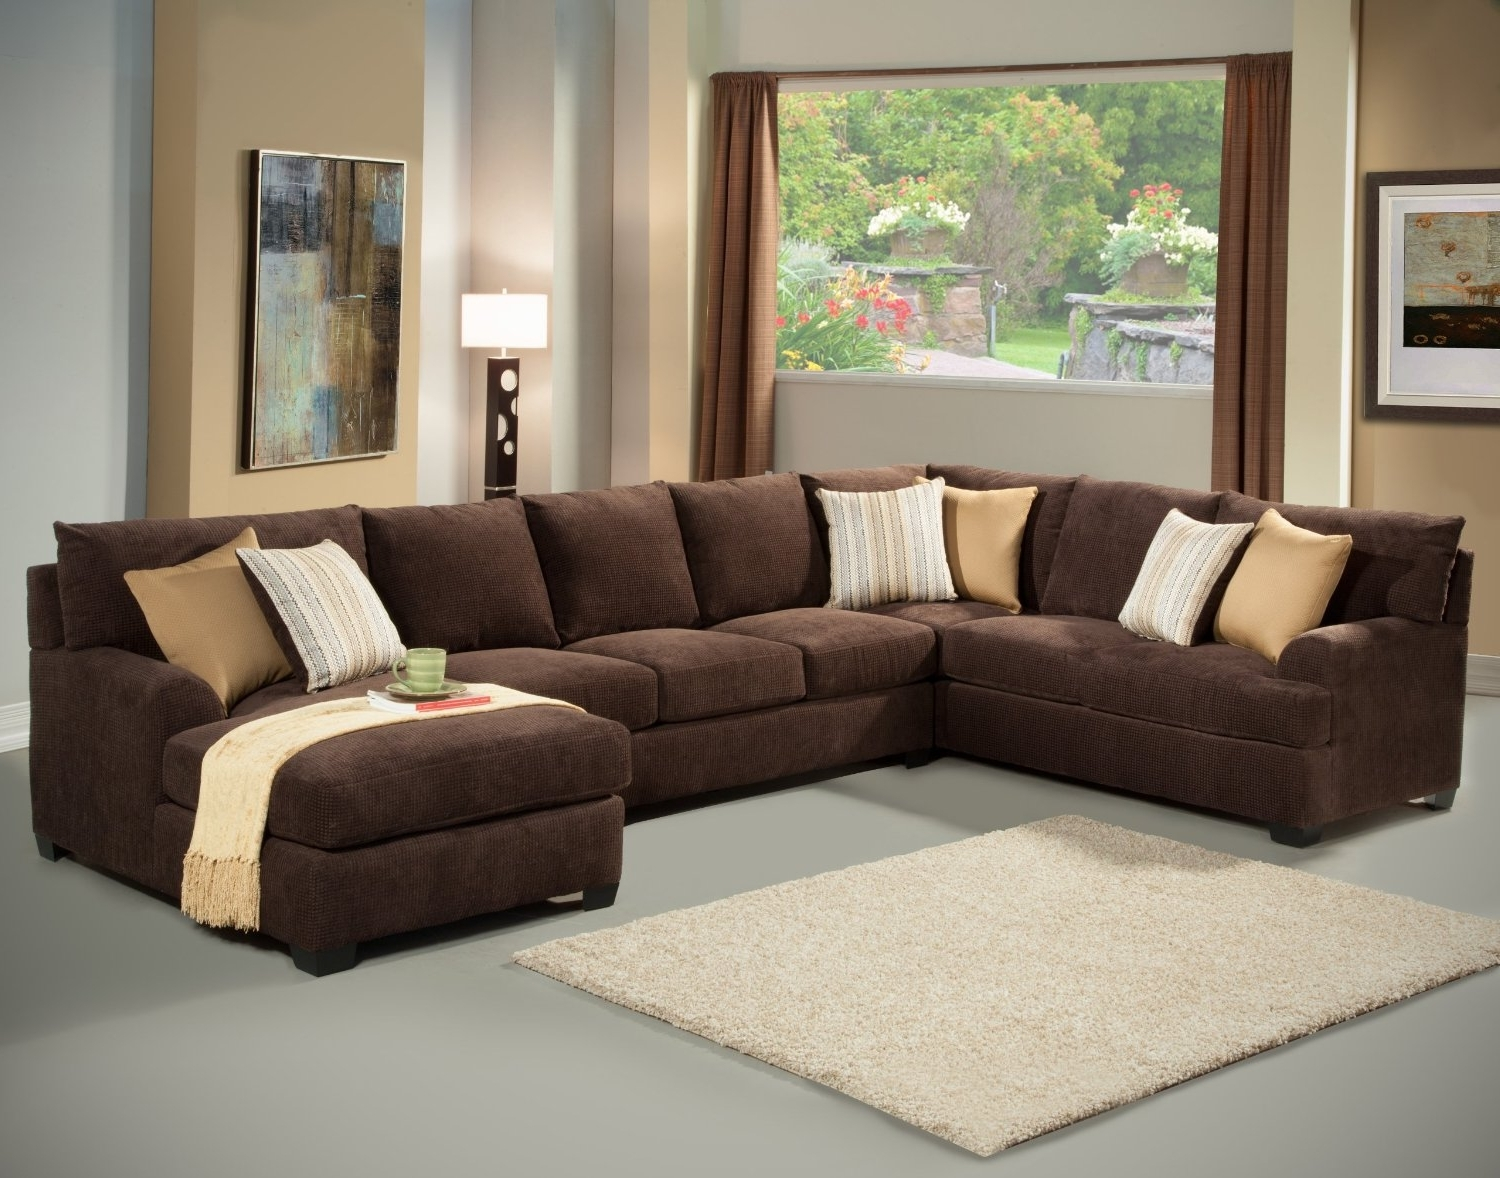 Newest Elliot Fabric Microfiber 2 Piece Chaise Sectional Sofa Macy's With Sectional Sofas With Chaise Lounge And Ottoman (View 5 of 15)